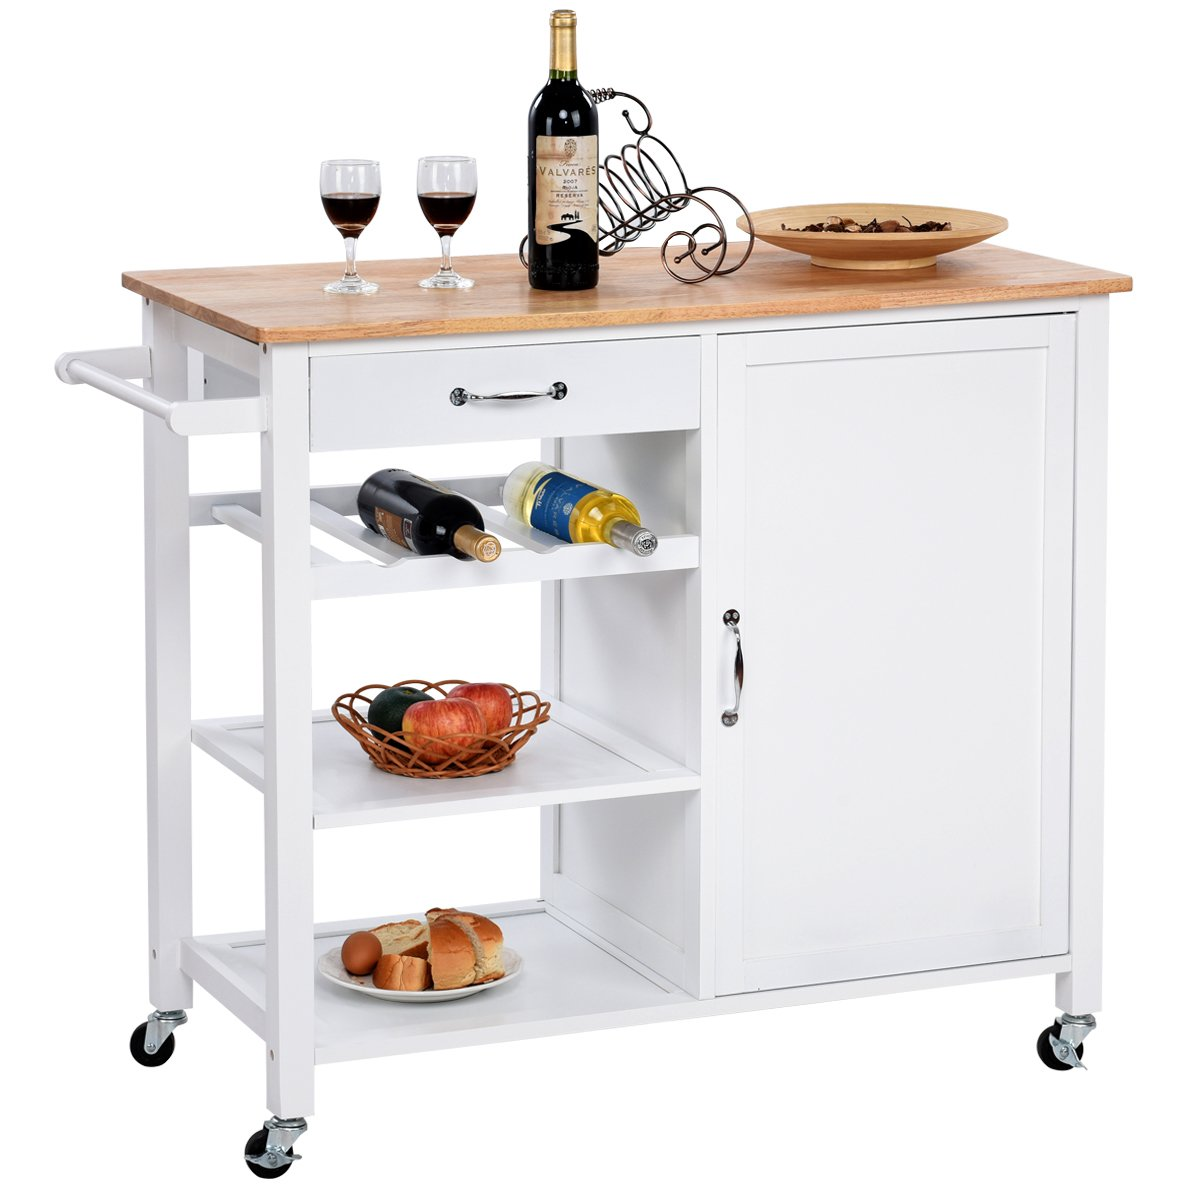 Giantex Kitchen Trolley Cart w/Wheels Rolling Storage Cabinet Wooden Table Multi-Function Island Cart Kitchen Truck (White) by Giantex (Image #1)